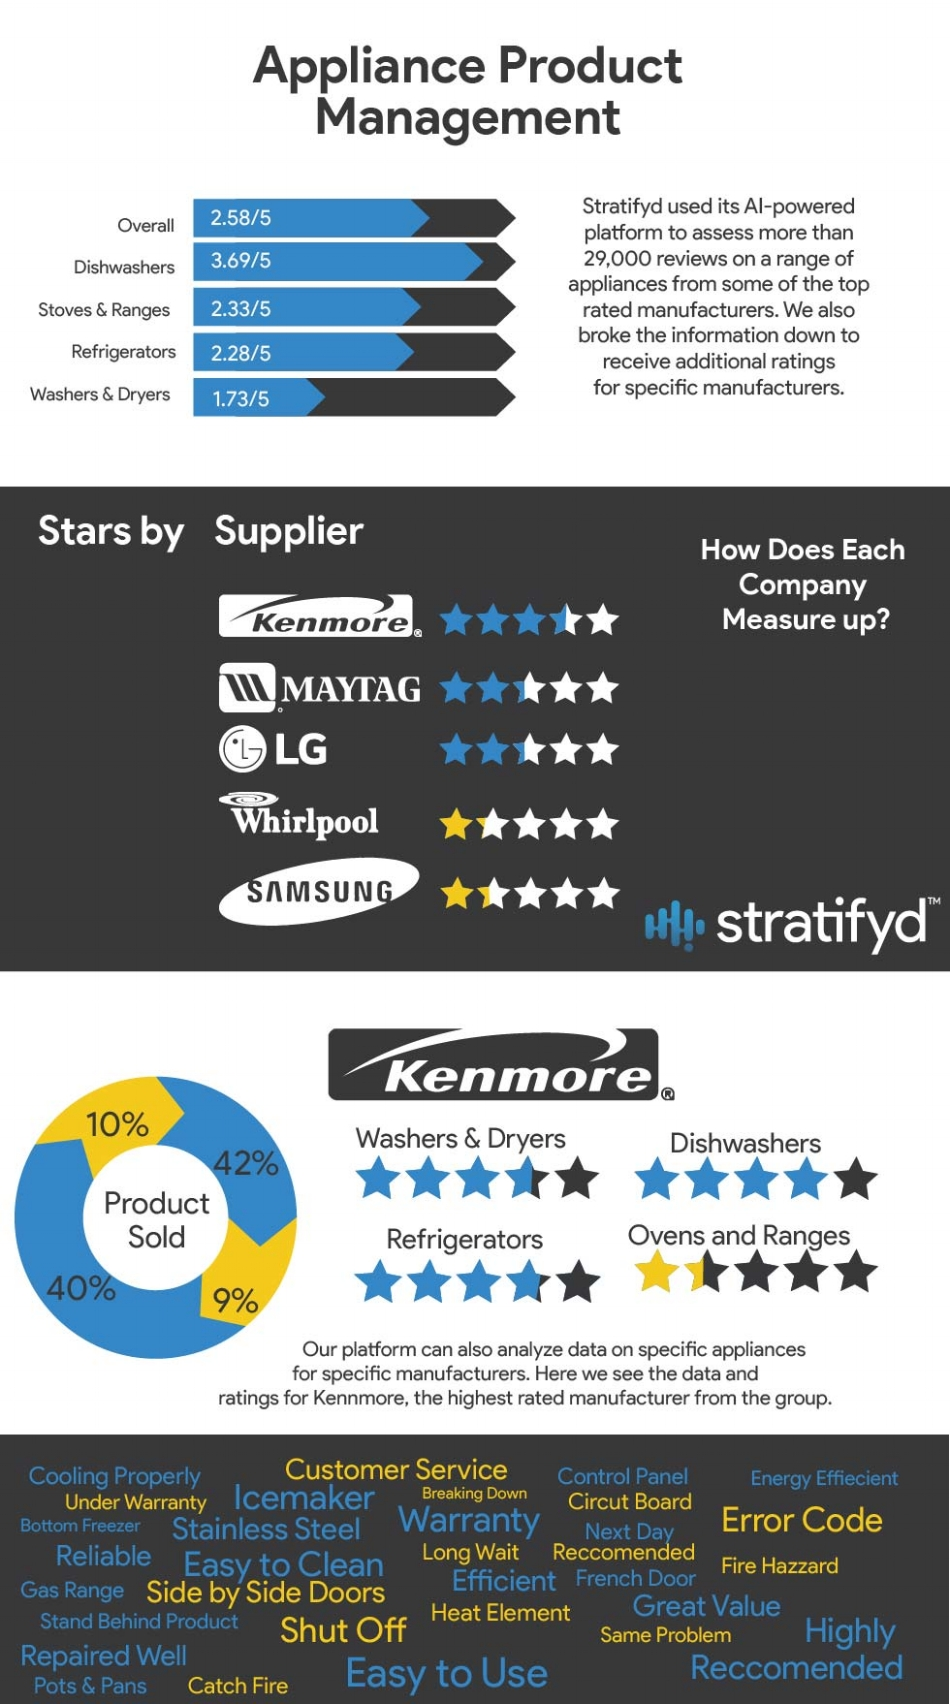 insights-from-appliance-customer-feedback-stratifyd-image.png